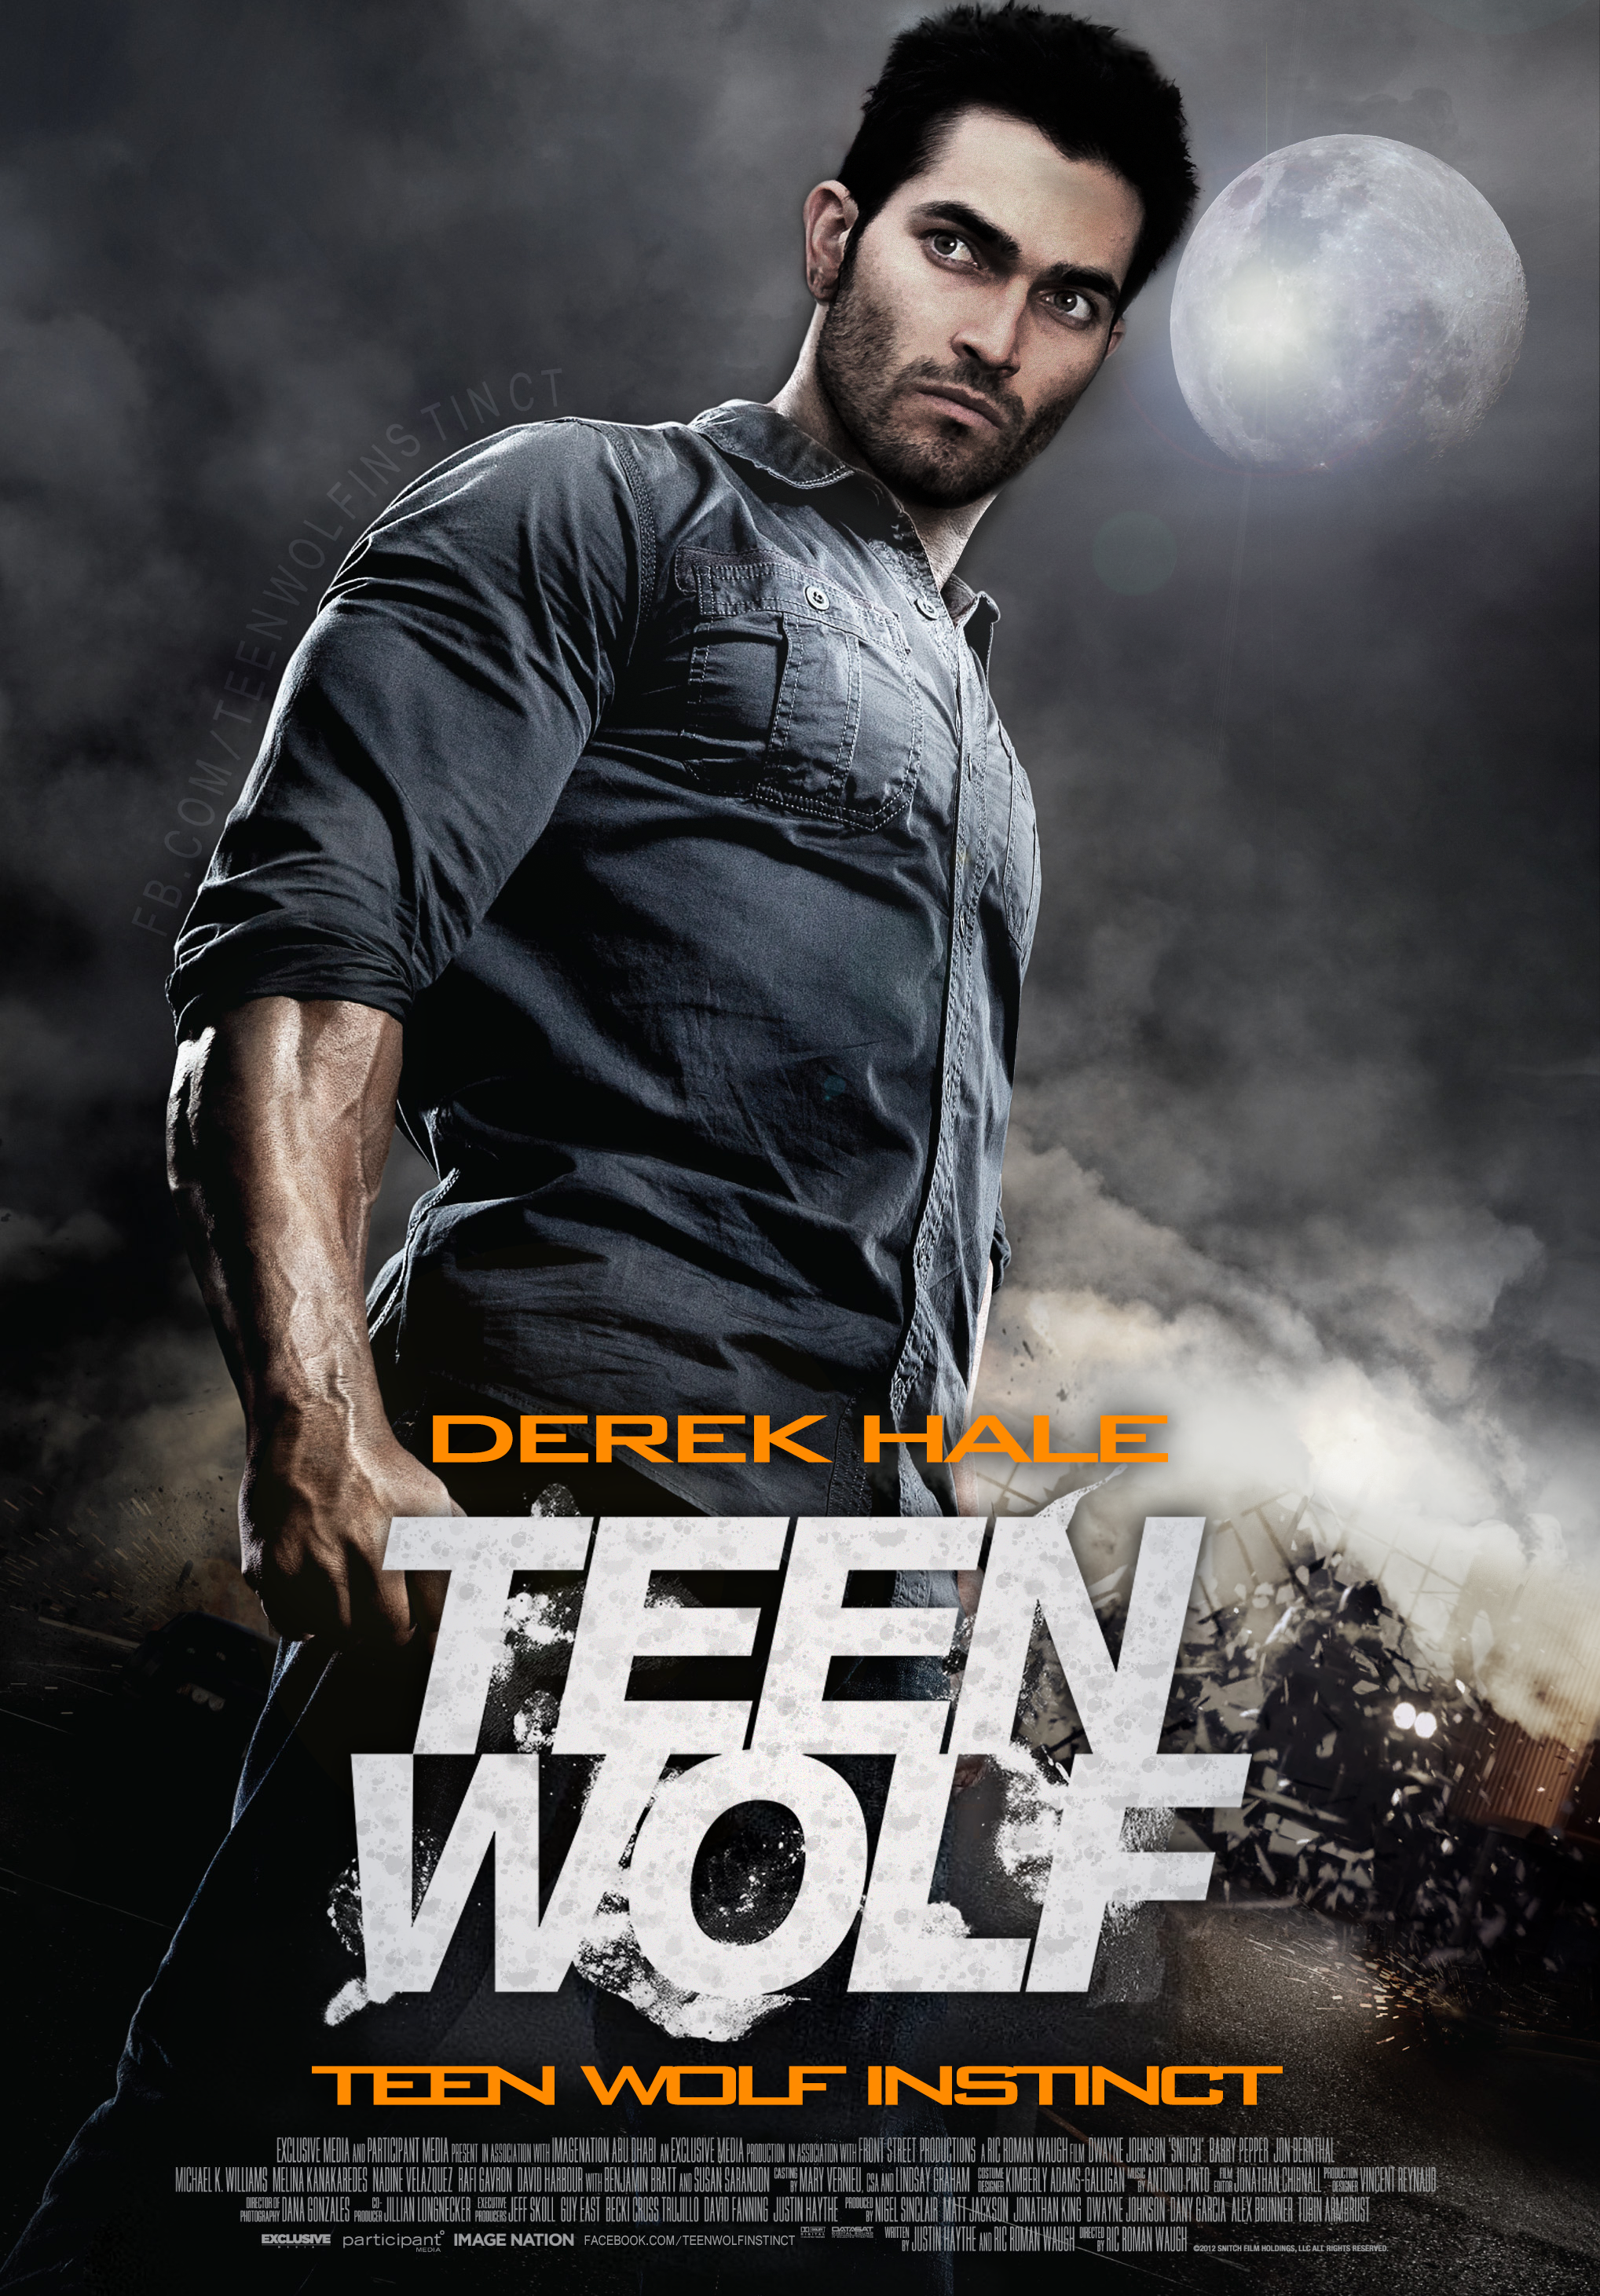 Teen Wolf - Derek Snitch by TeenWolfInstinct on DeviantArt